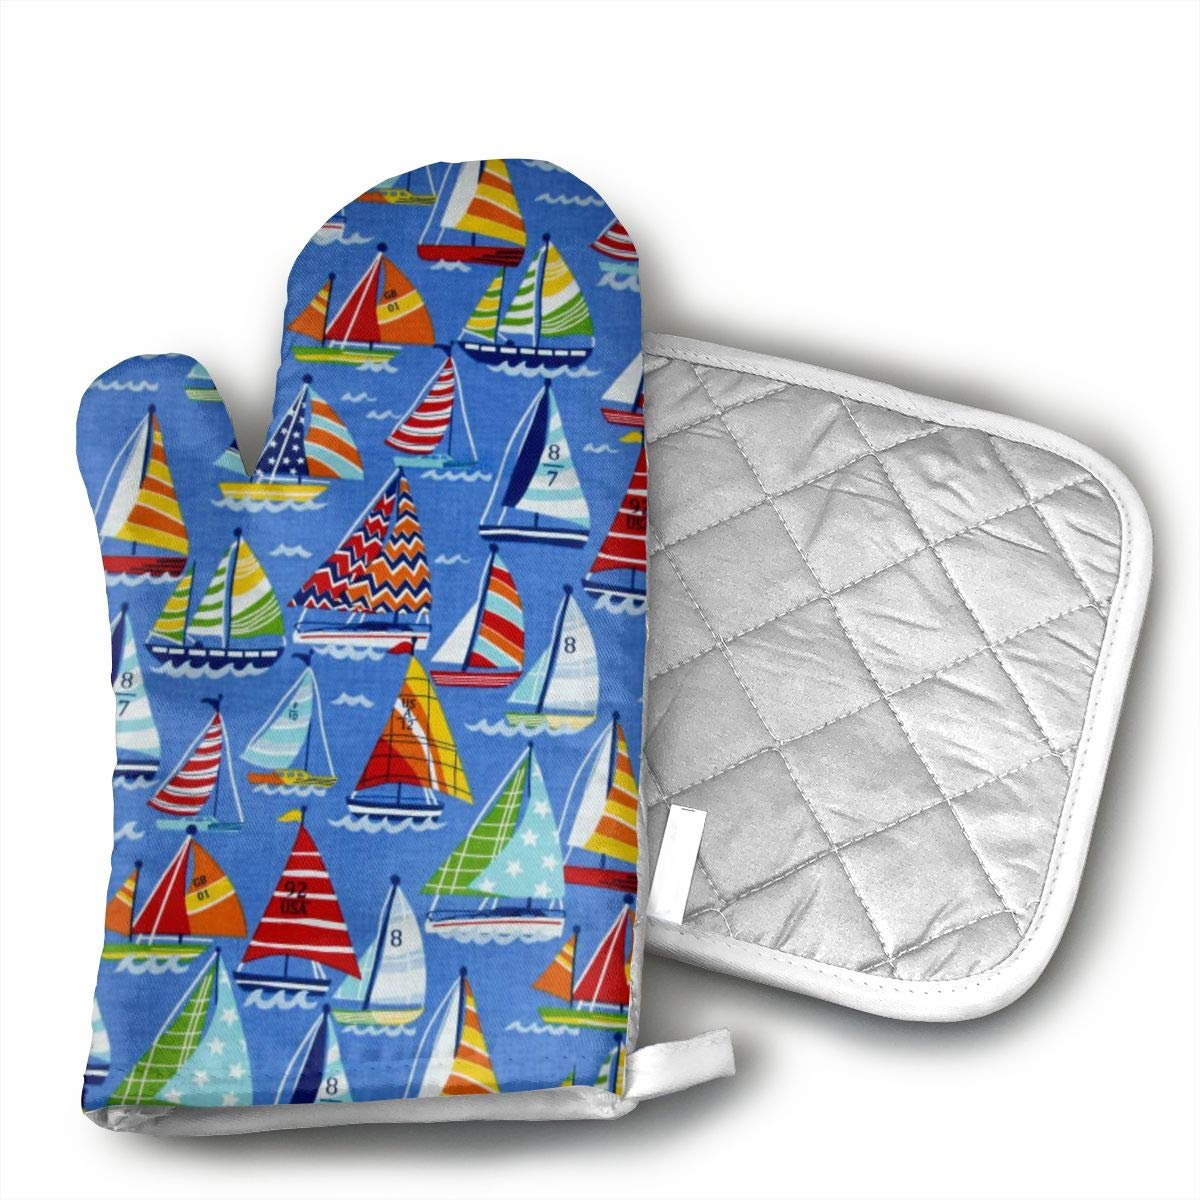 Ydsgjds Clear Sailing Sailboats Allover Blue Multi Oven Mitts and BBQ Gloves Pot Holders,Kitchen Gloves for Grilling Machine Baking Grilling with Non-Slip